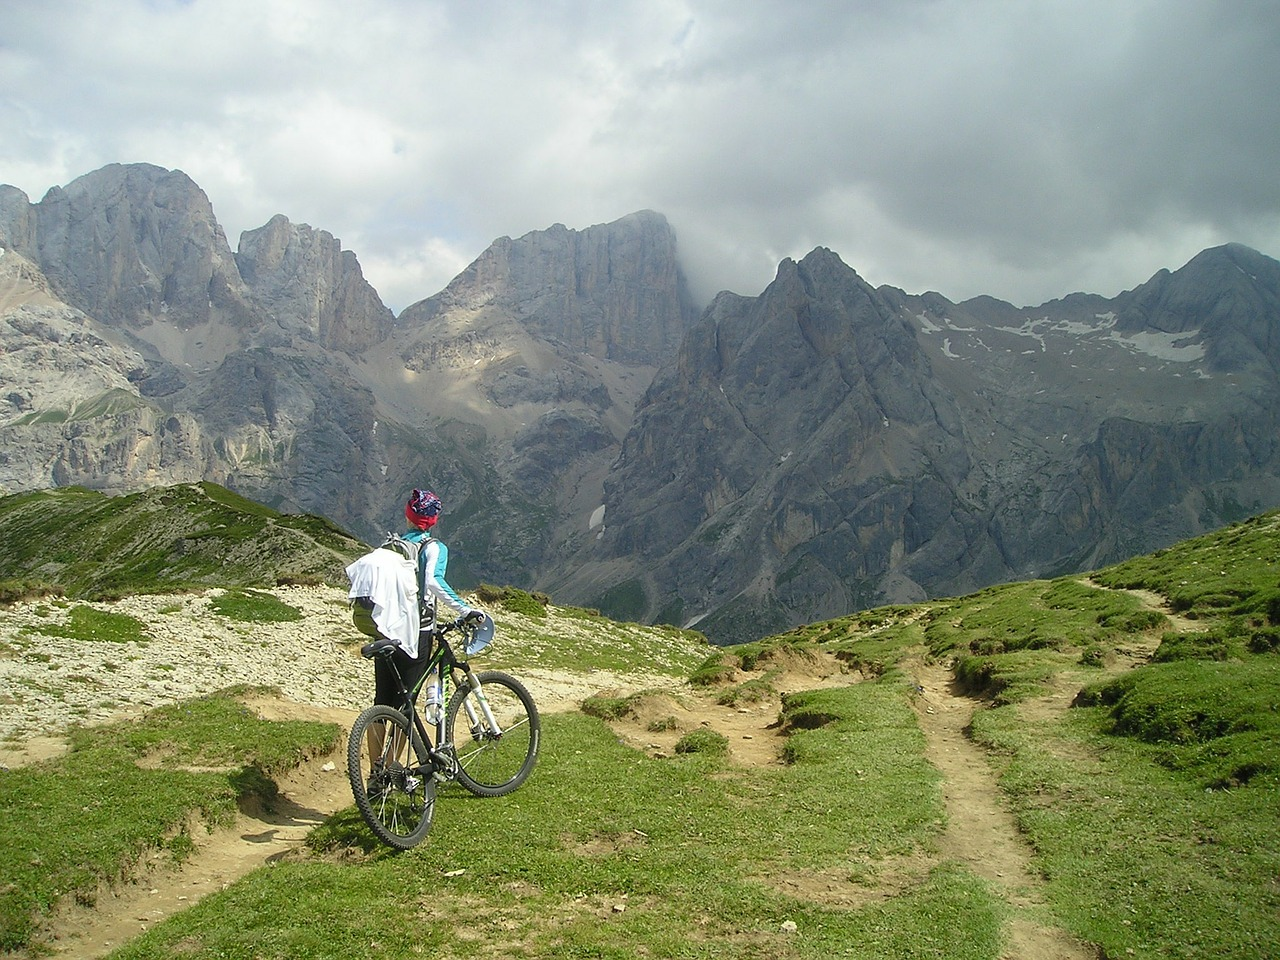 Cyclist holding a bike, standing and looking at a mountain in front of them, facing away from the camera.